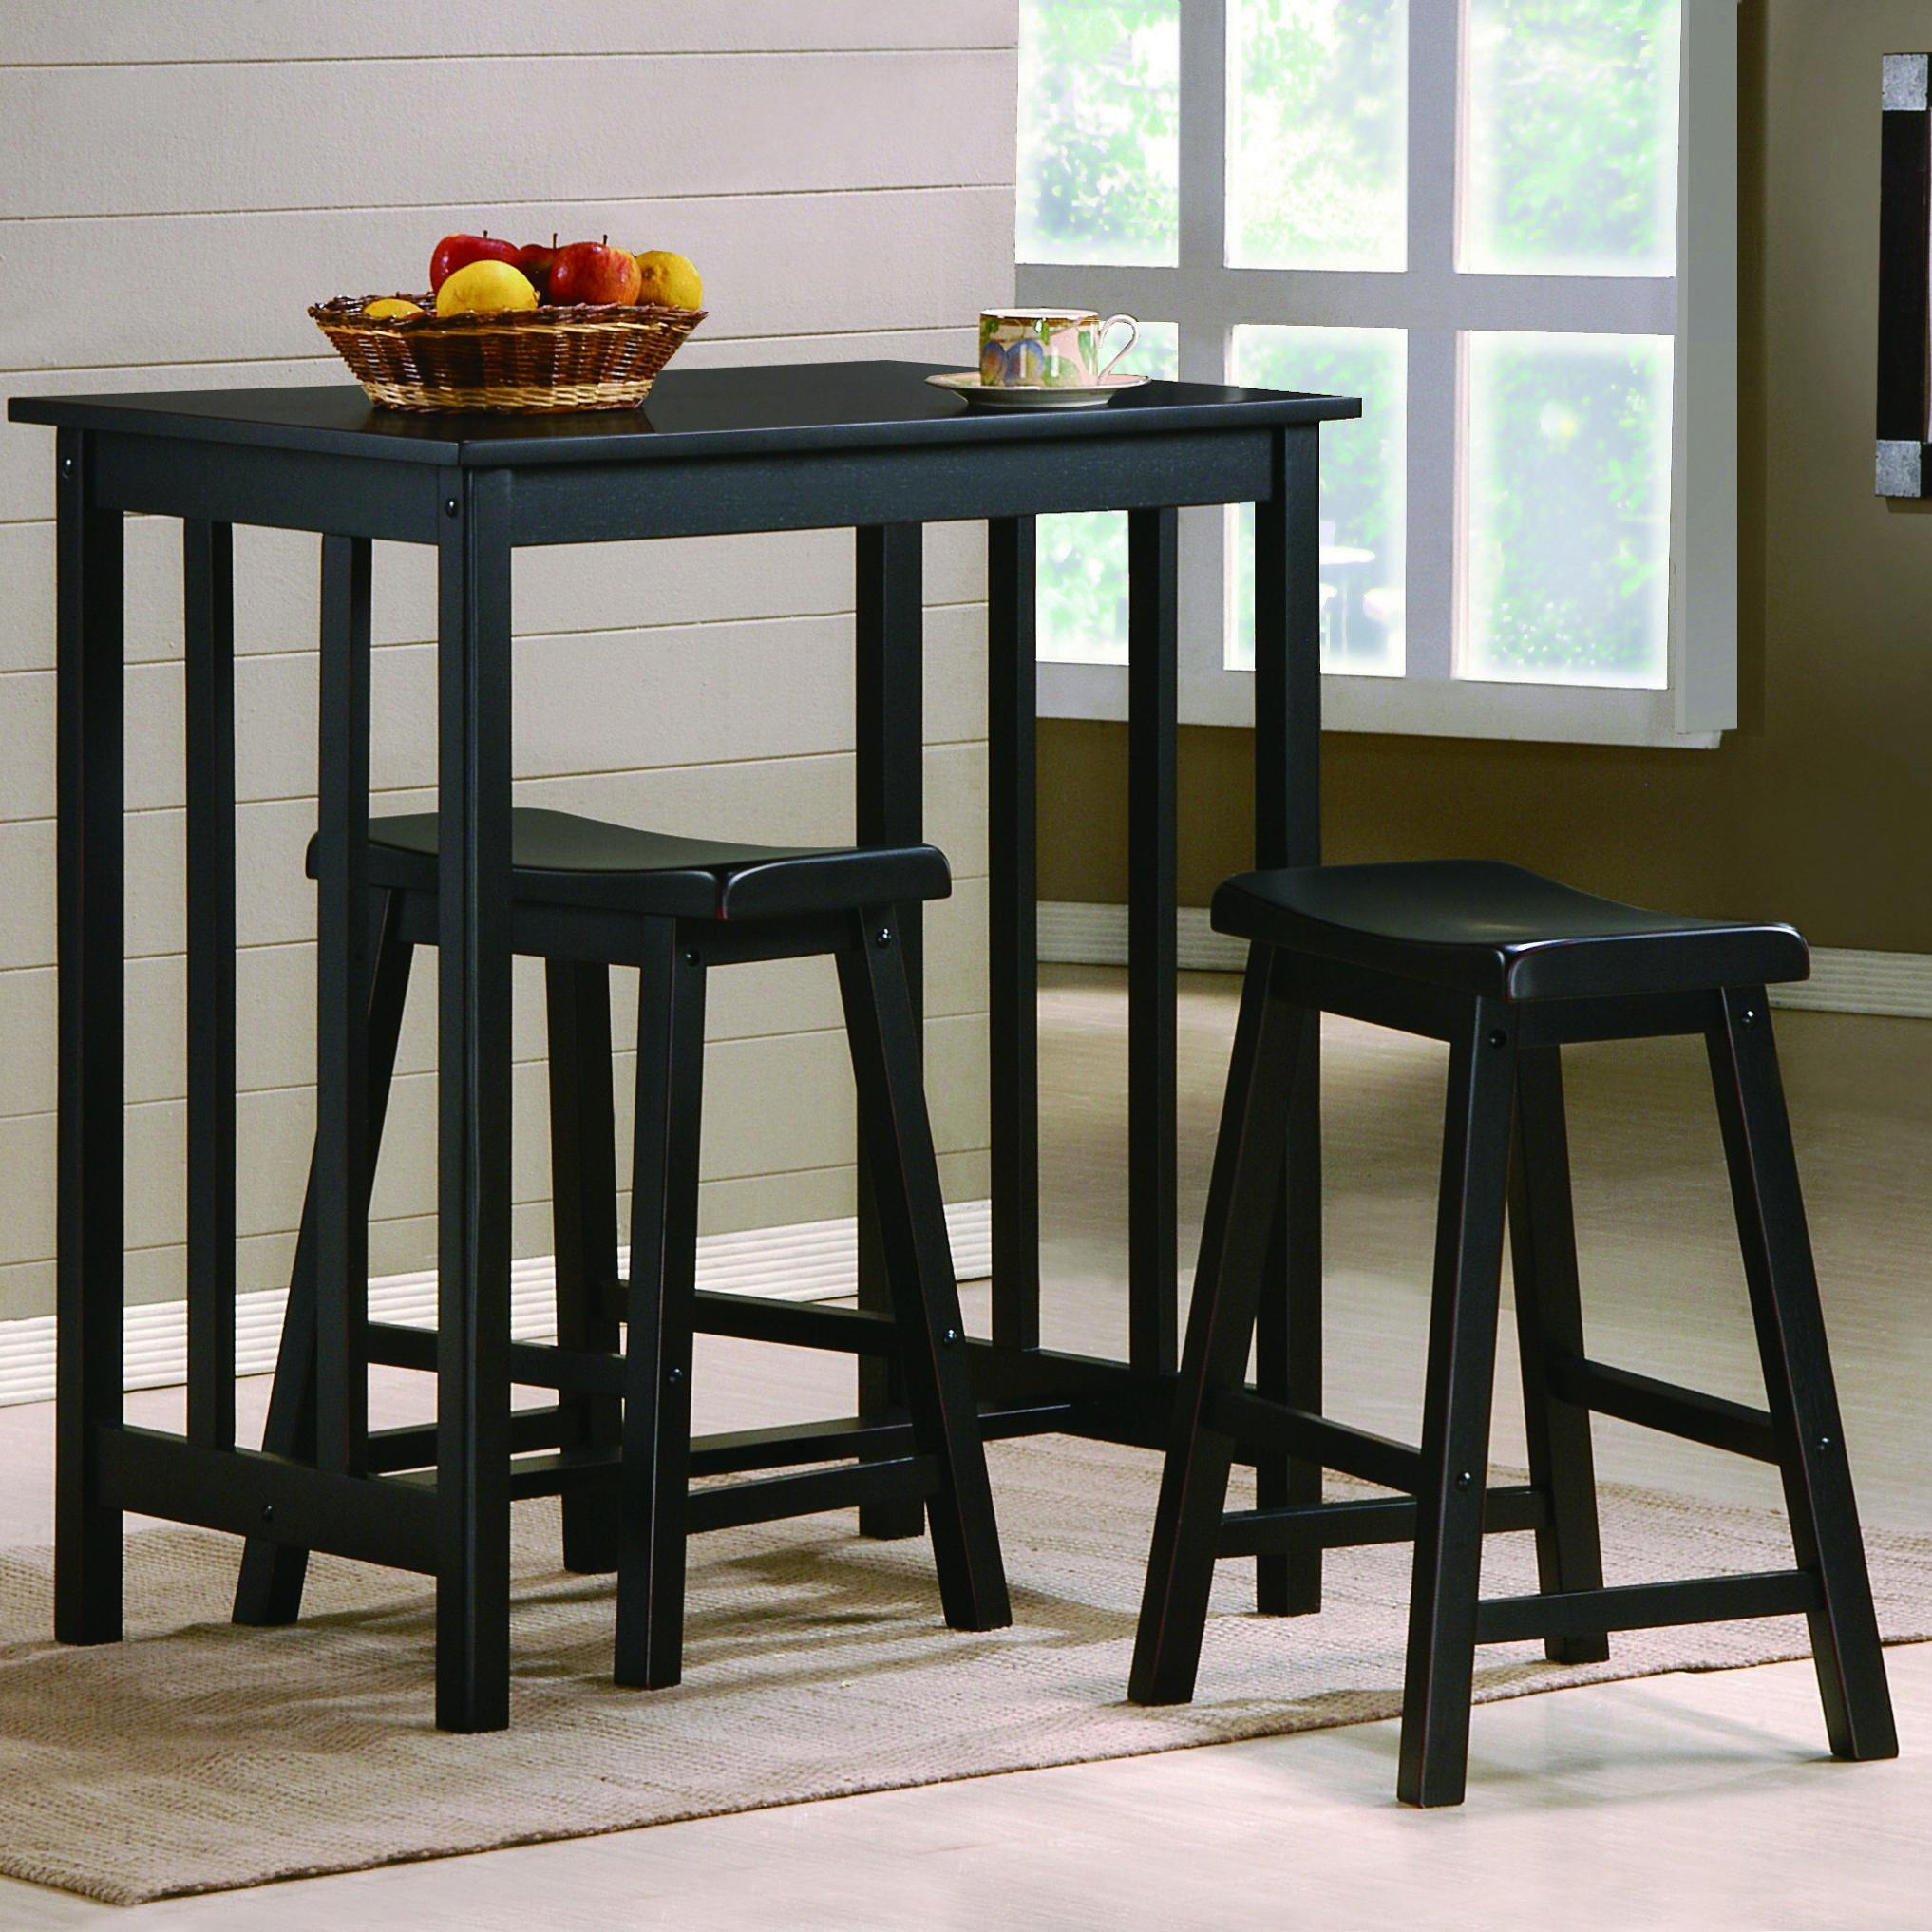 Dina 3 Piece Counter Height Table & Stool Set by Crown Mark at Wilcox Furniture